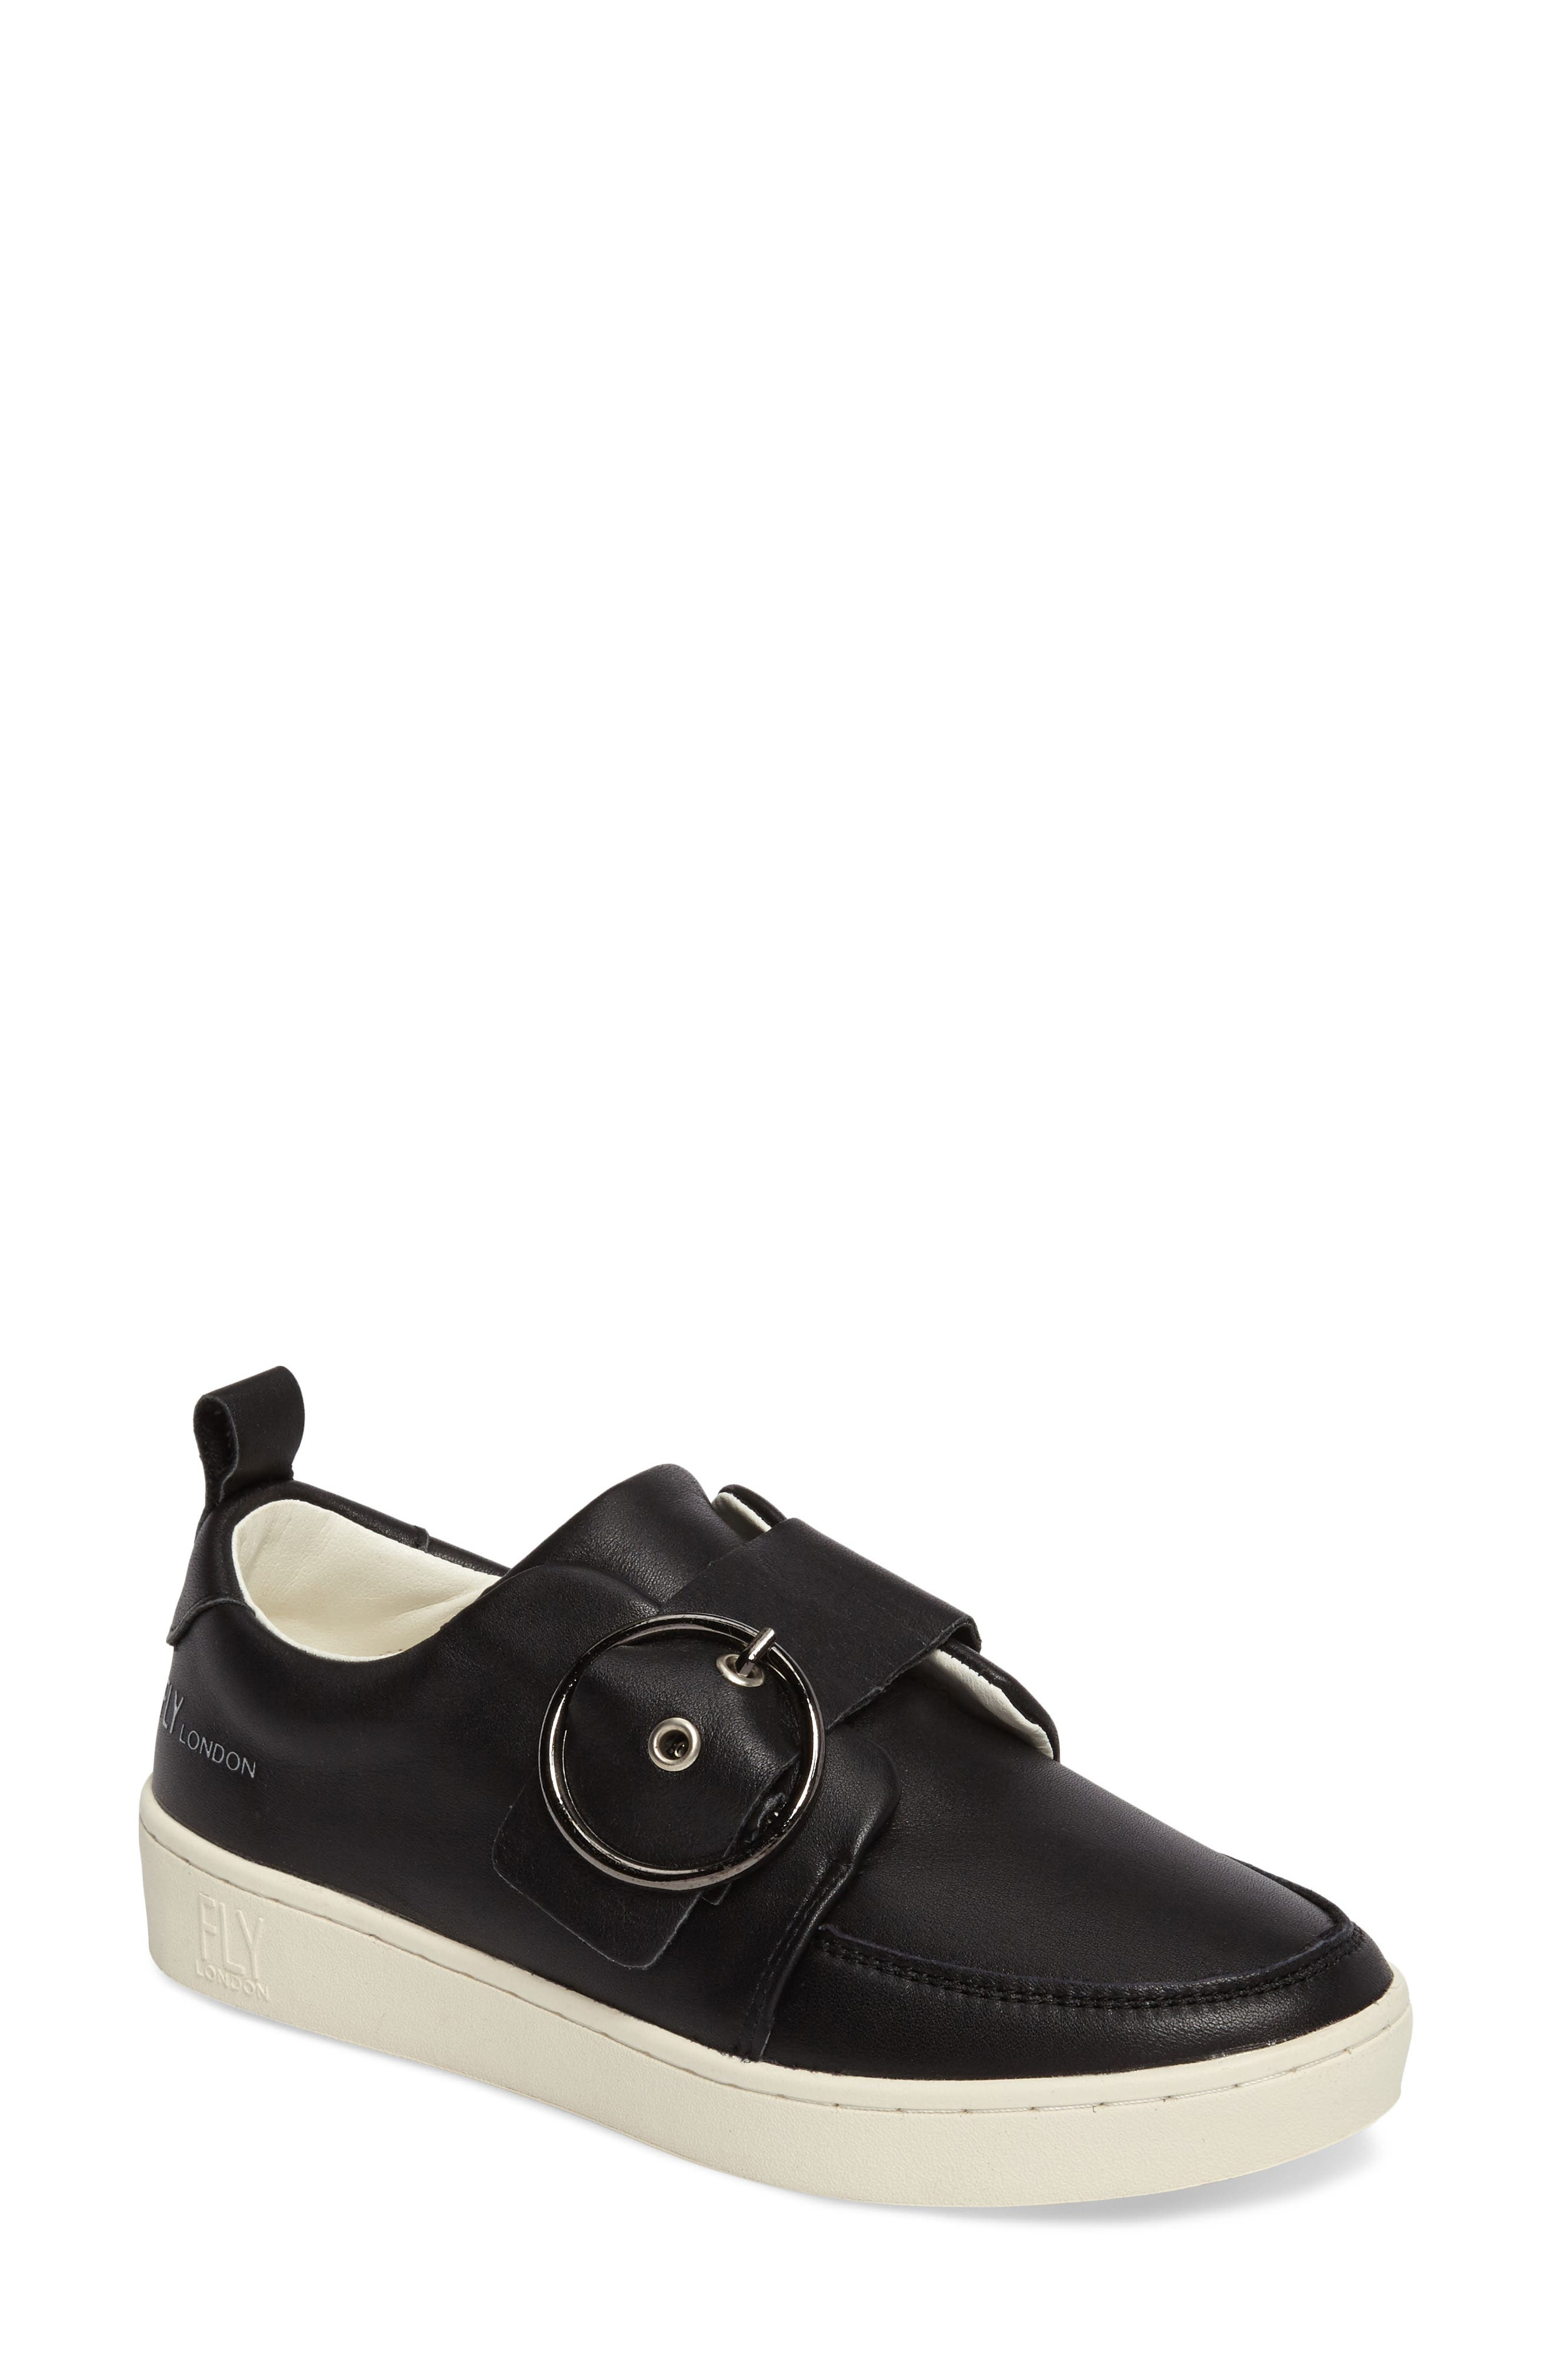 Mice Buckle Sneaker,                             Main thumbnail 1, color,                             Black Leather